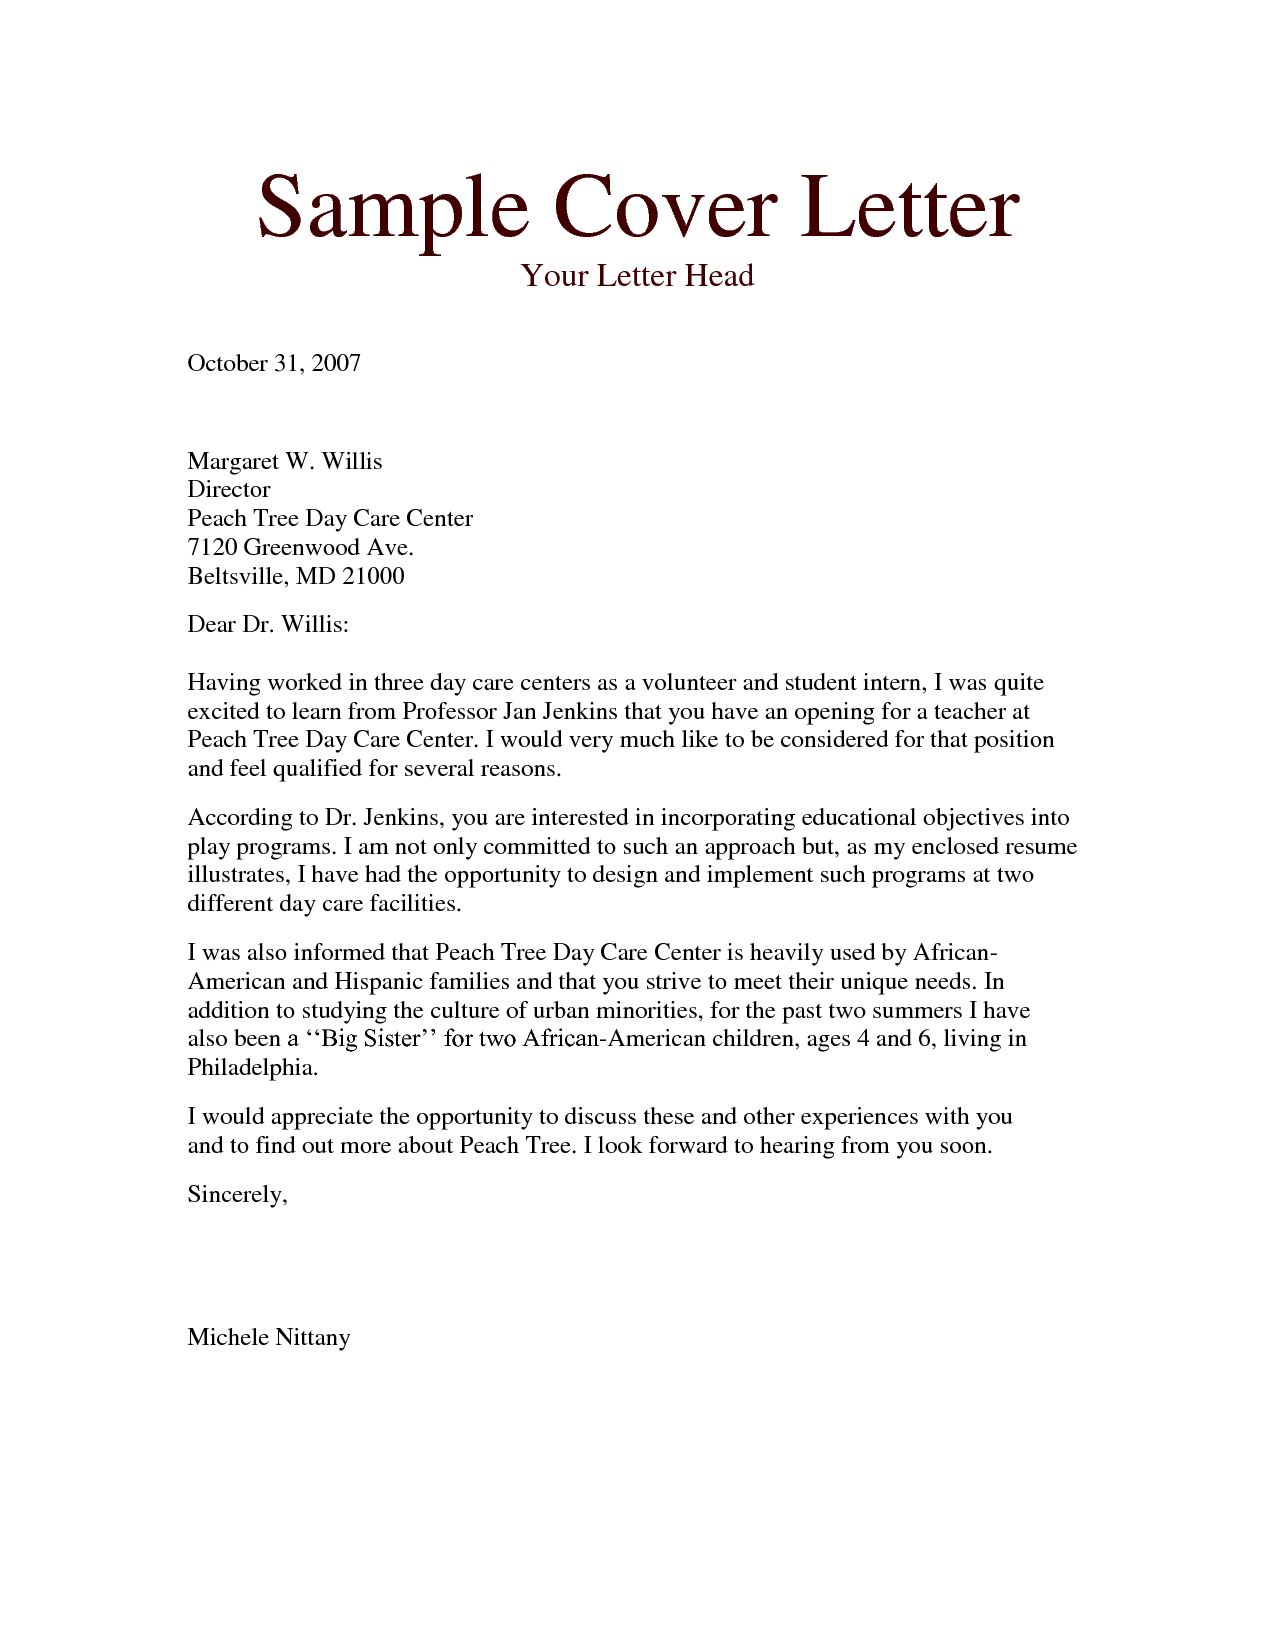 Good Writing A Cover Letter For Executive Assistant. How To Write A Cover Letter.  Cover Letters. As Much As They Require More Work, Cover Letters Are A Great  ...